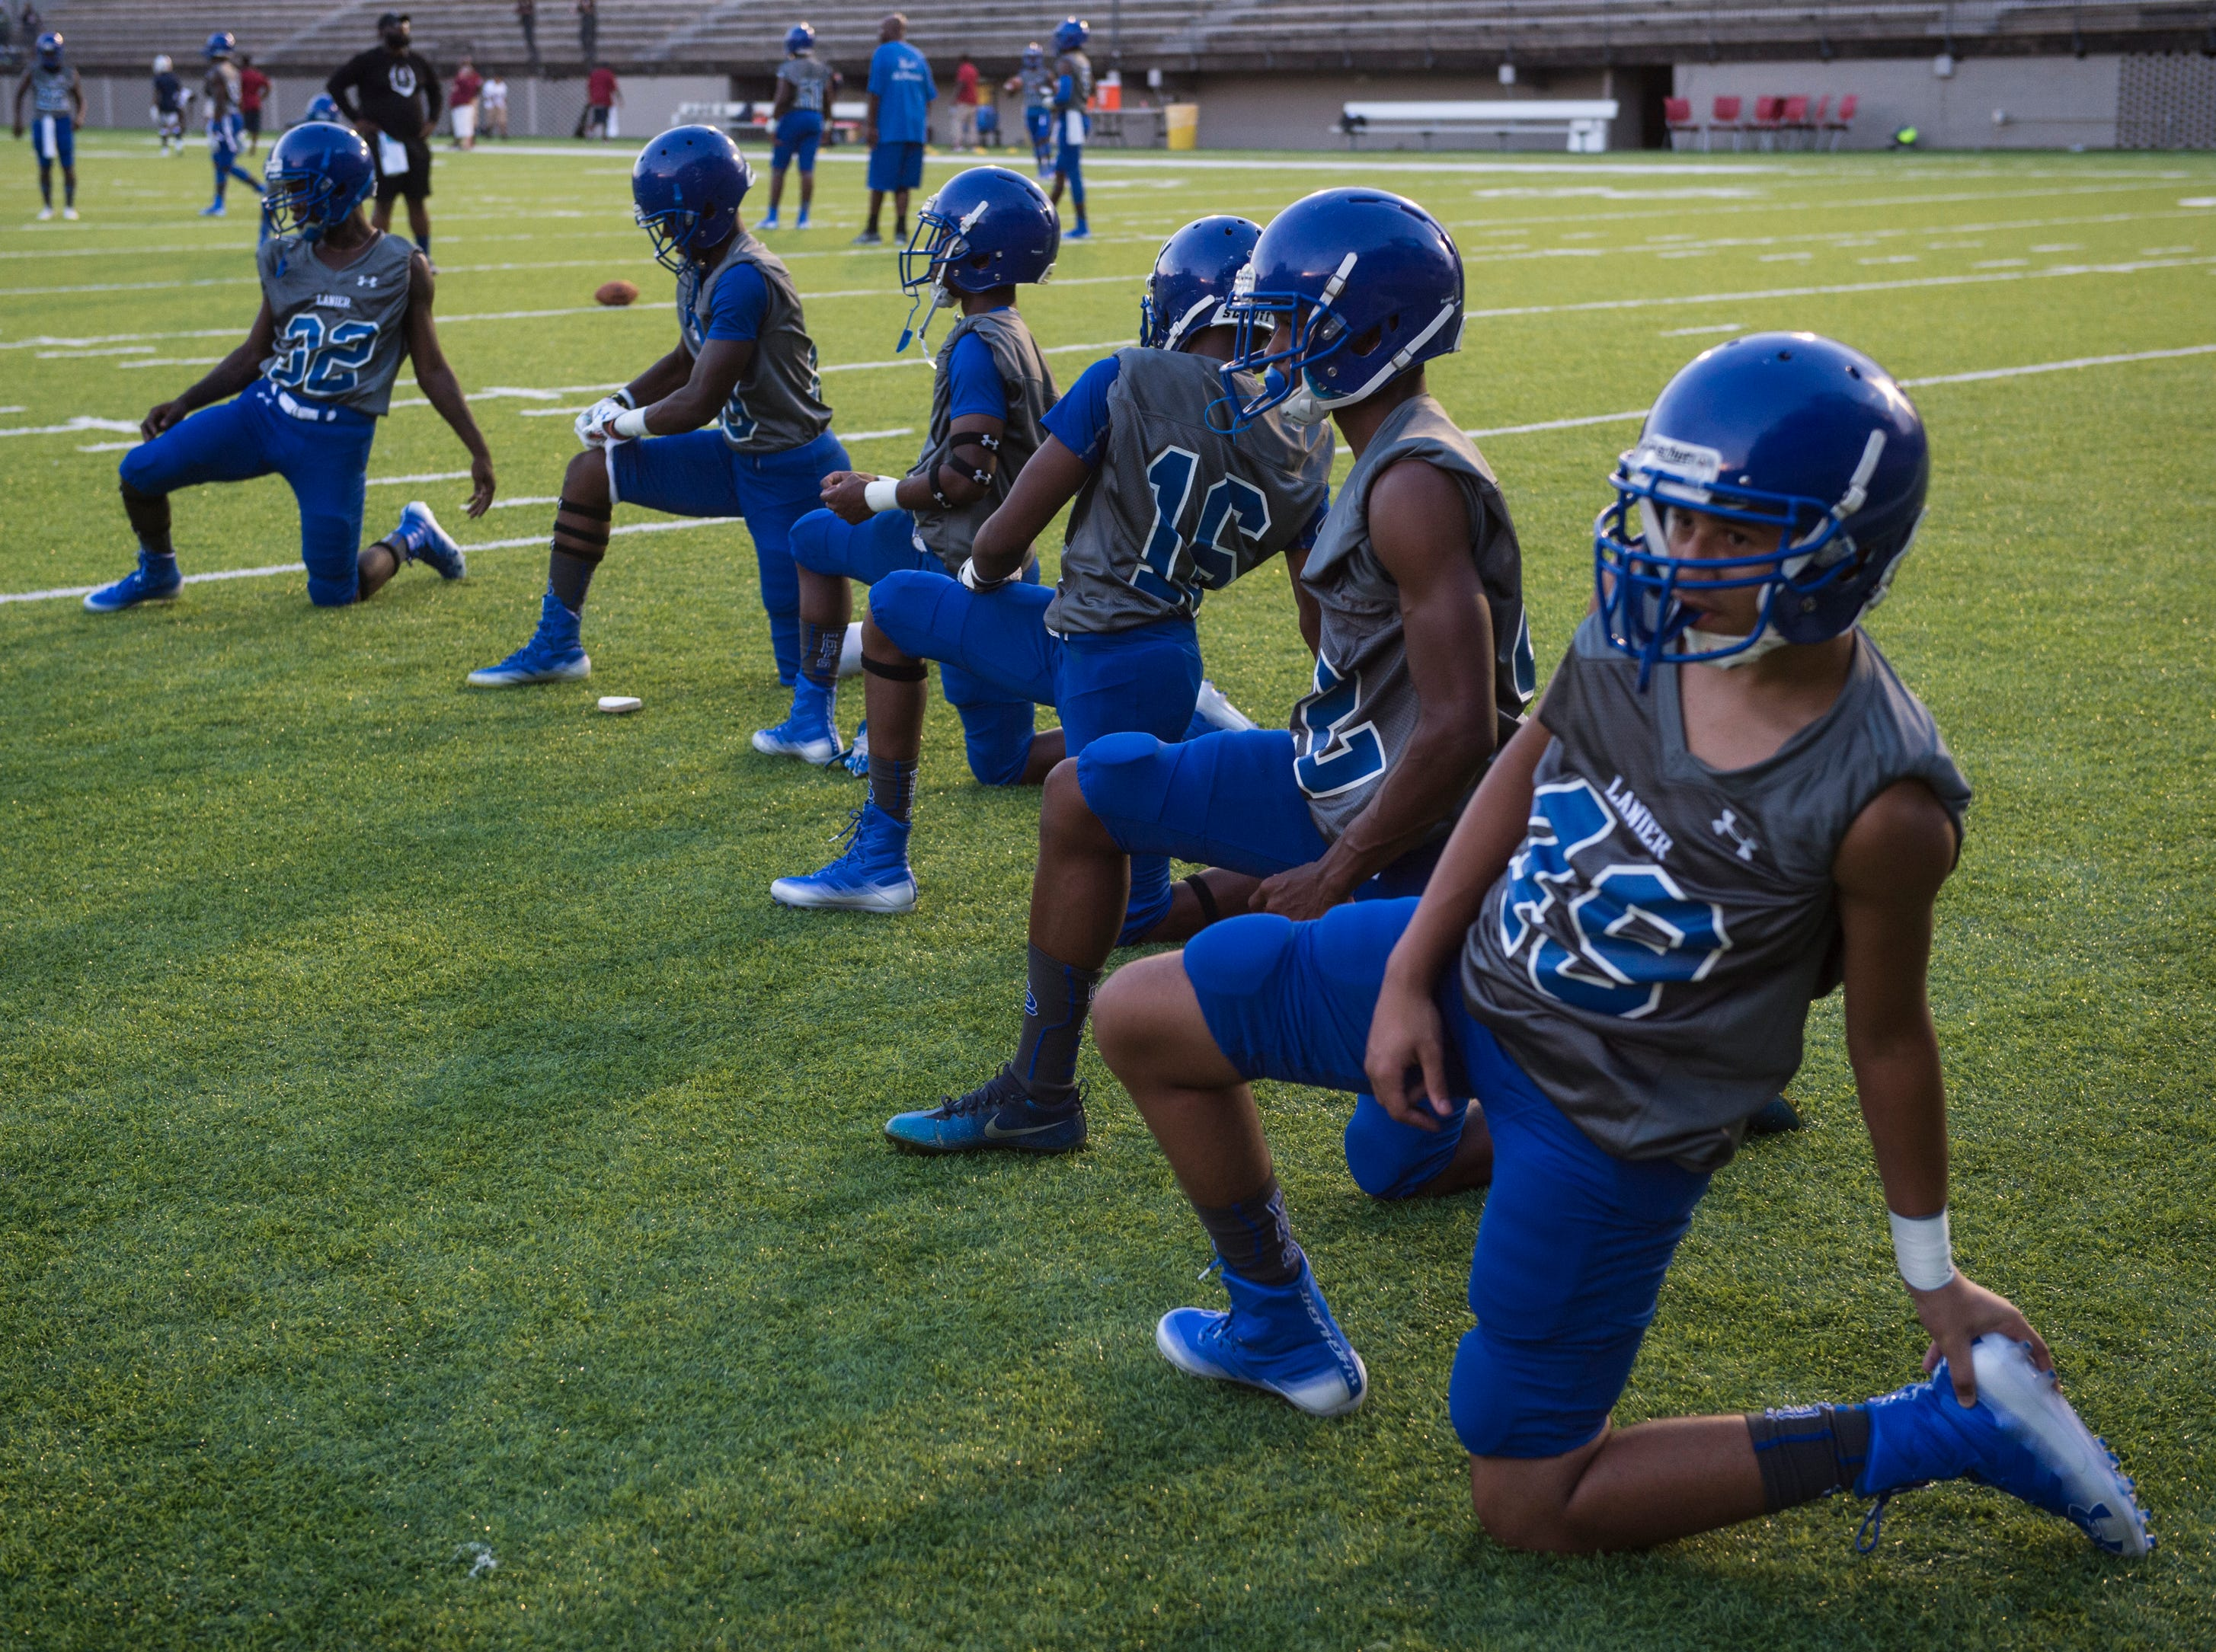 Lanier players warm up before taking on Park Crossing at Cramton Bowl in Montgomery, Ala., on Friday, Sept. 21, 2018. Lanier leads Park Crossing 14-7 at halftime.